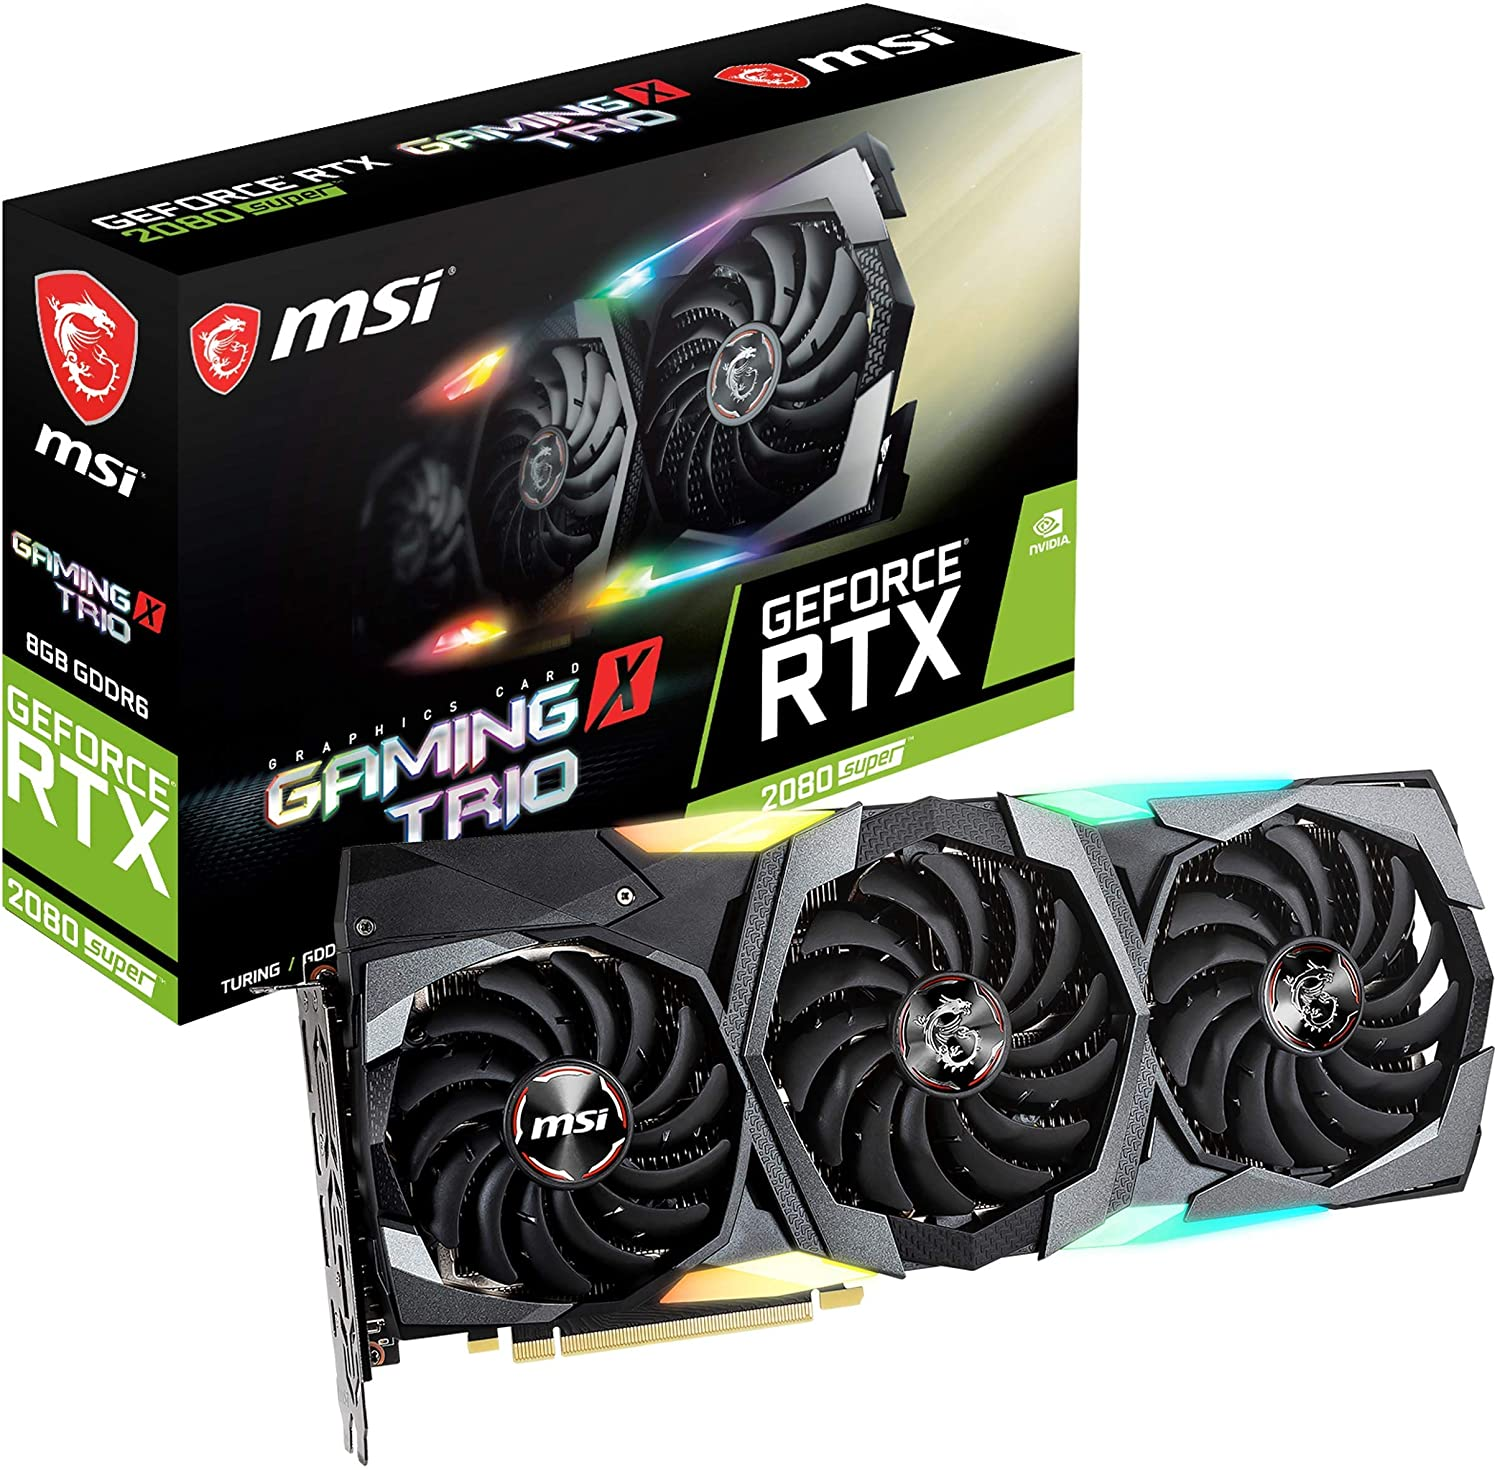 MSI Gaming GeForce RTX 2080 Super 8GB GDRR6 256-Bit HDMI/DP Nvlink Tri-Frozr Turing Architecture Overclocked Graphics Card (RTX 2080 Super Gaming X Trio) (Renewed)